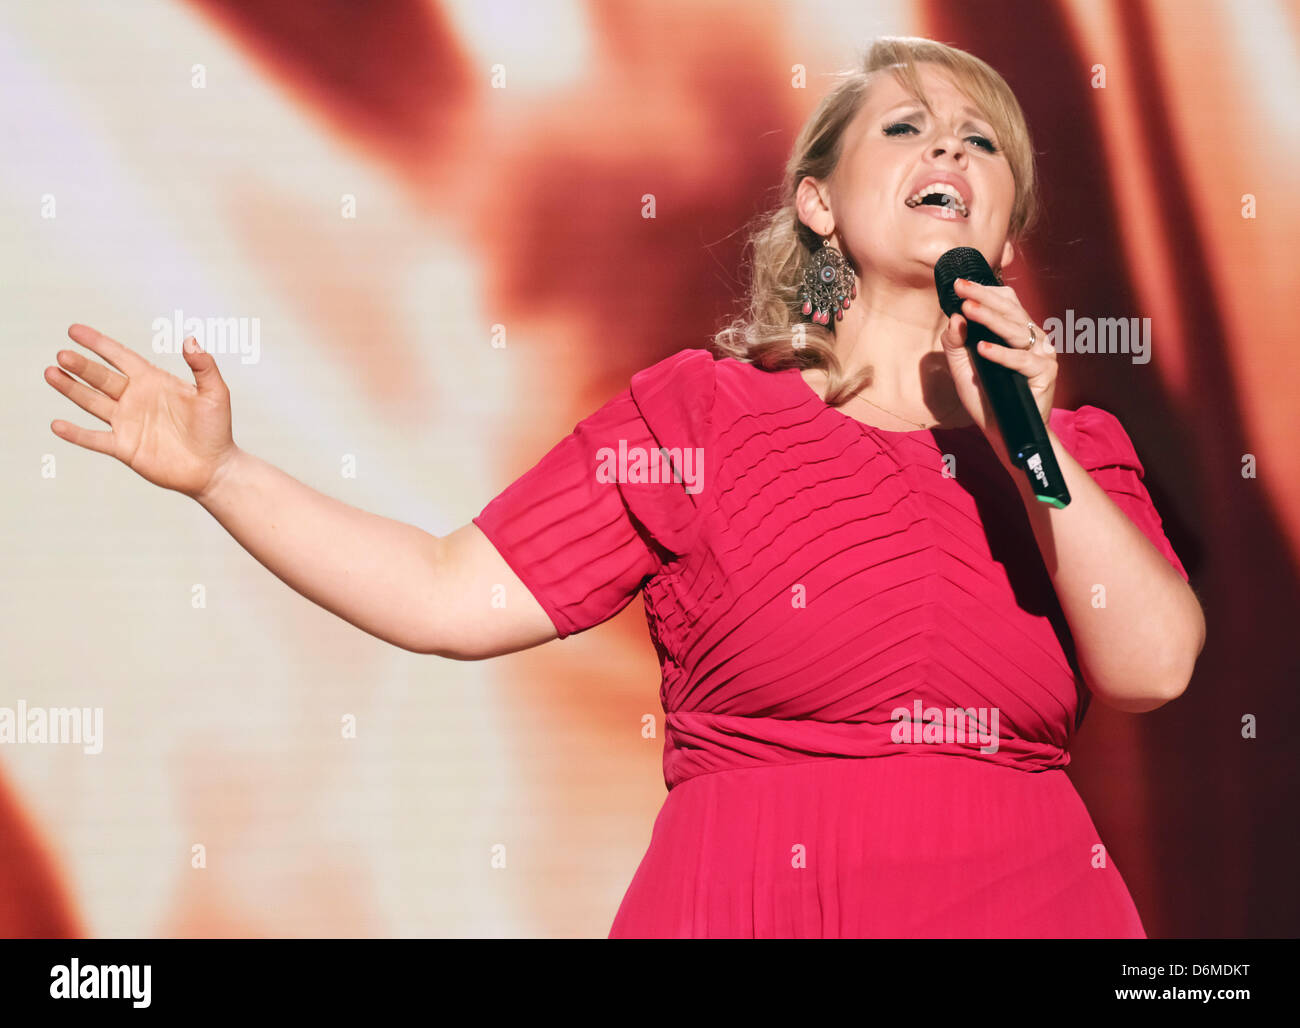 Singer Maite Kelly performs during the German television ...